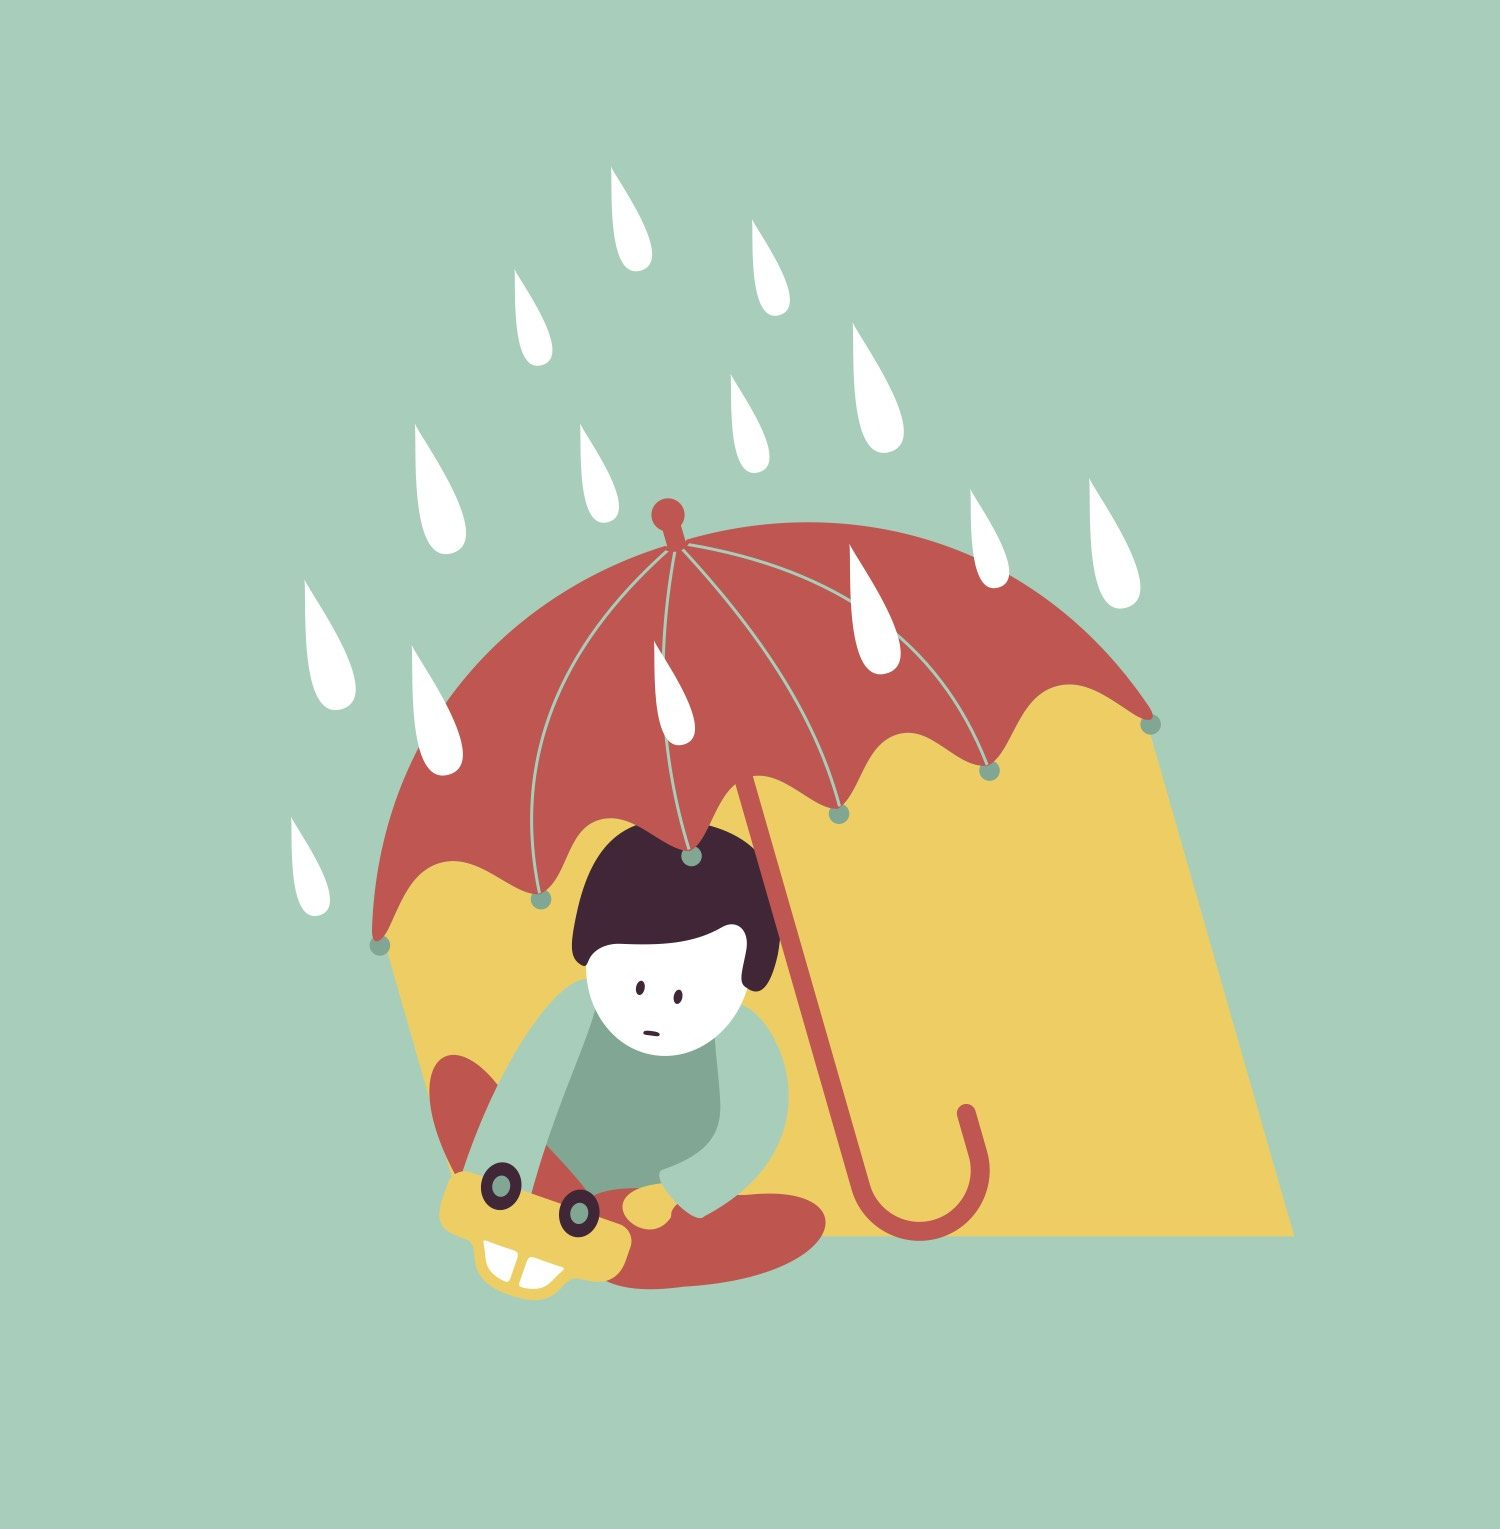 Child with autism playing under umbrella